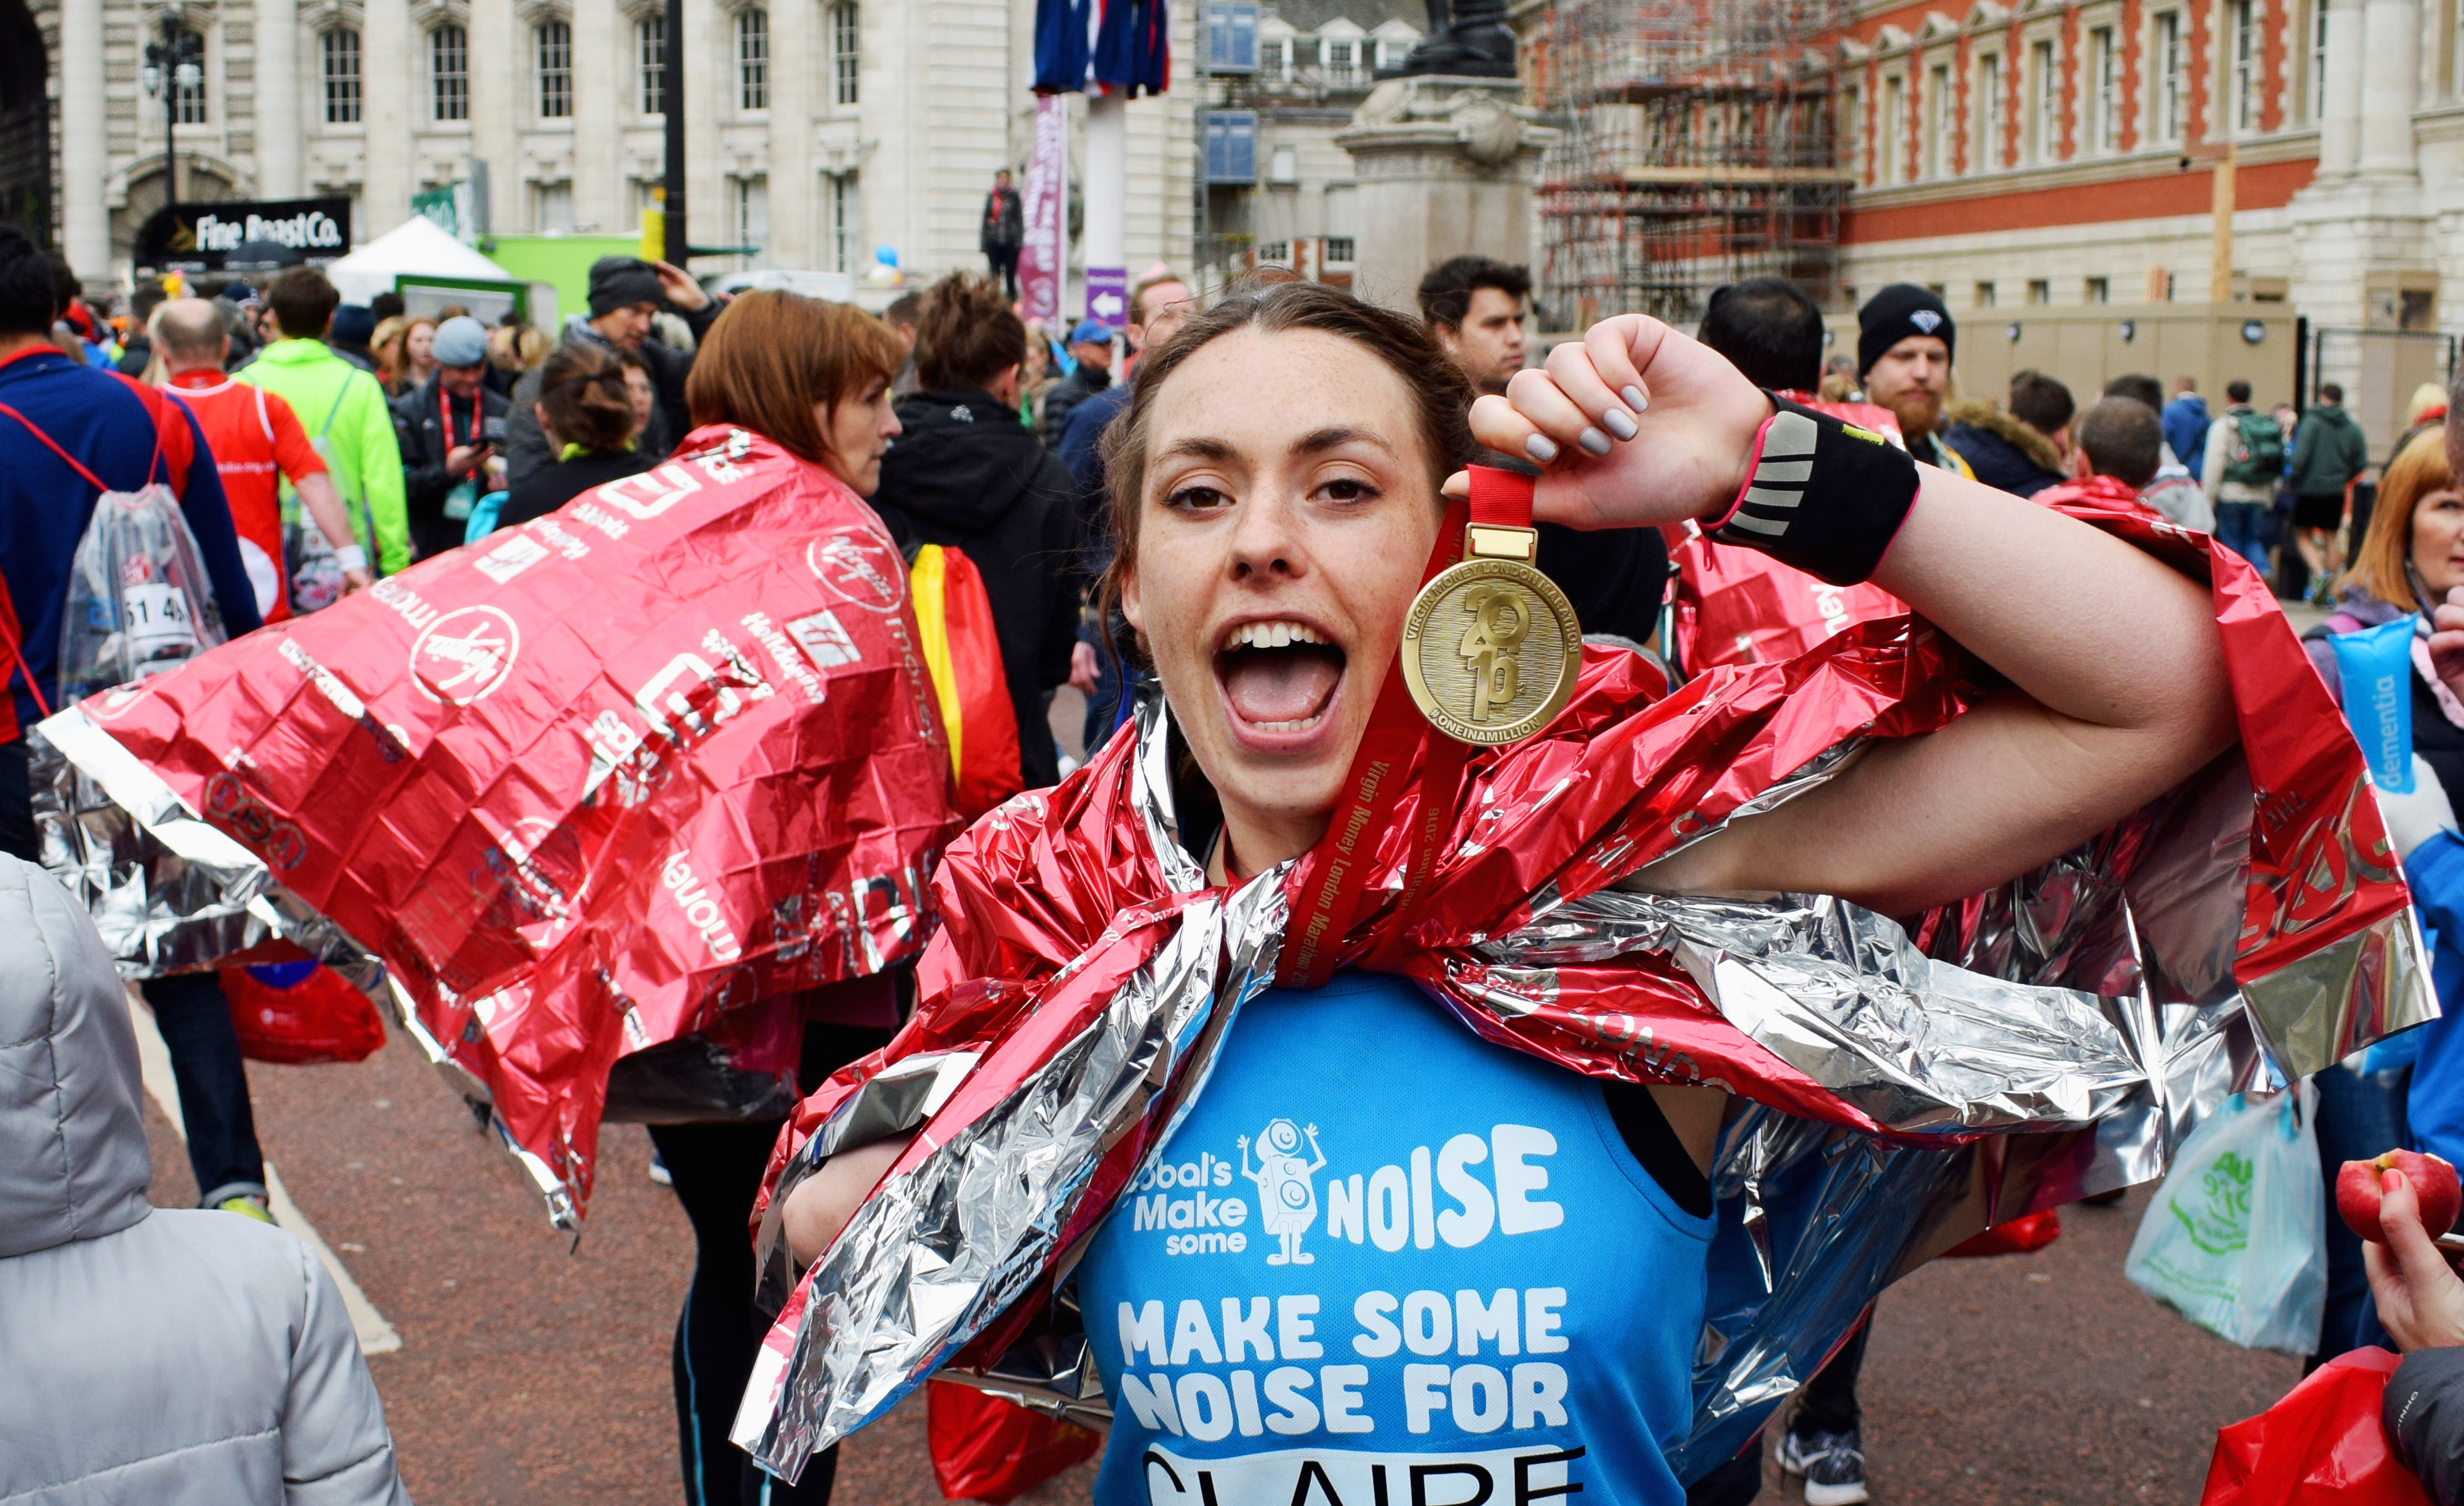 Run the Virgin Money London Marathon for Make Some Noise